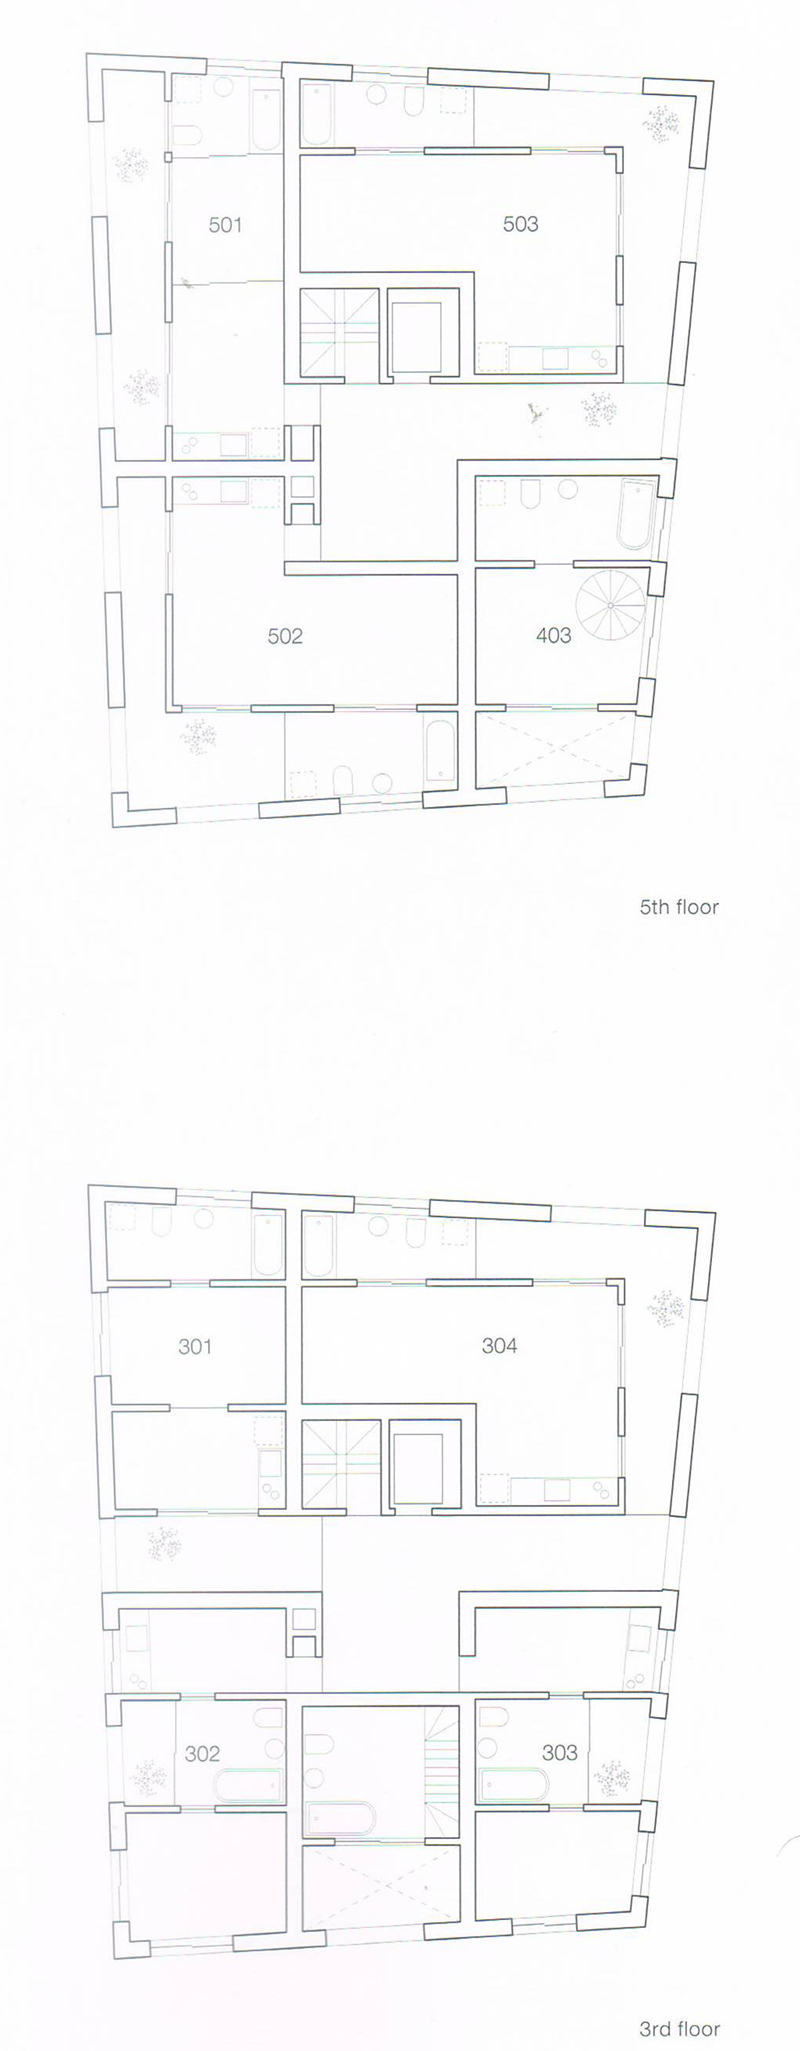 Nerima Apartments Go Hasegawa Bathroom As Transition In 2020 High Rise Building How To Plan Floor Plans